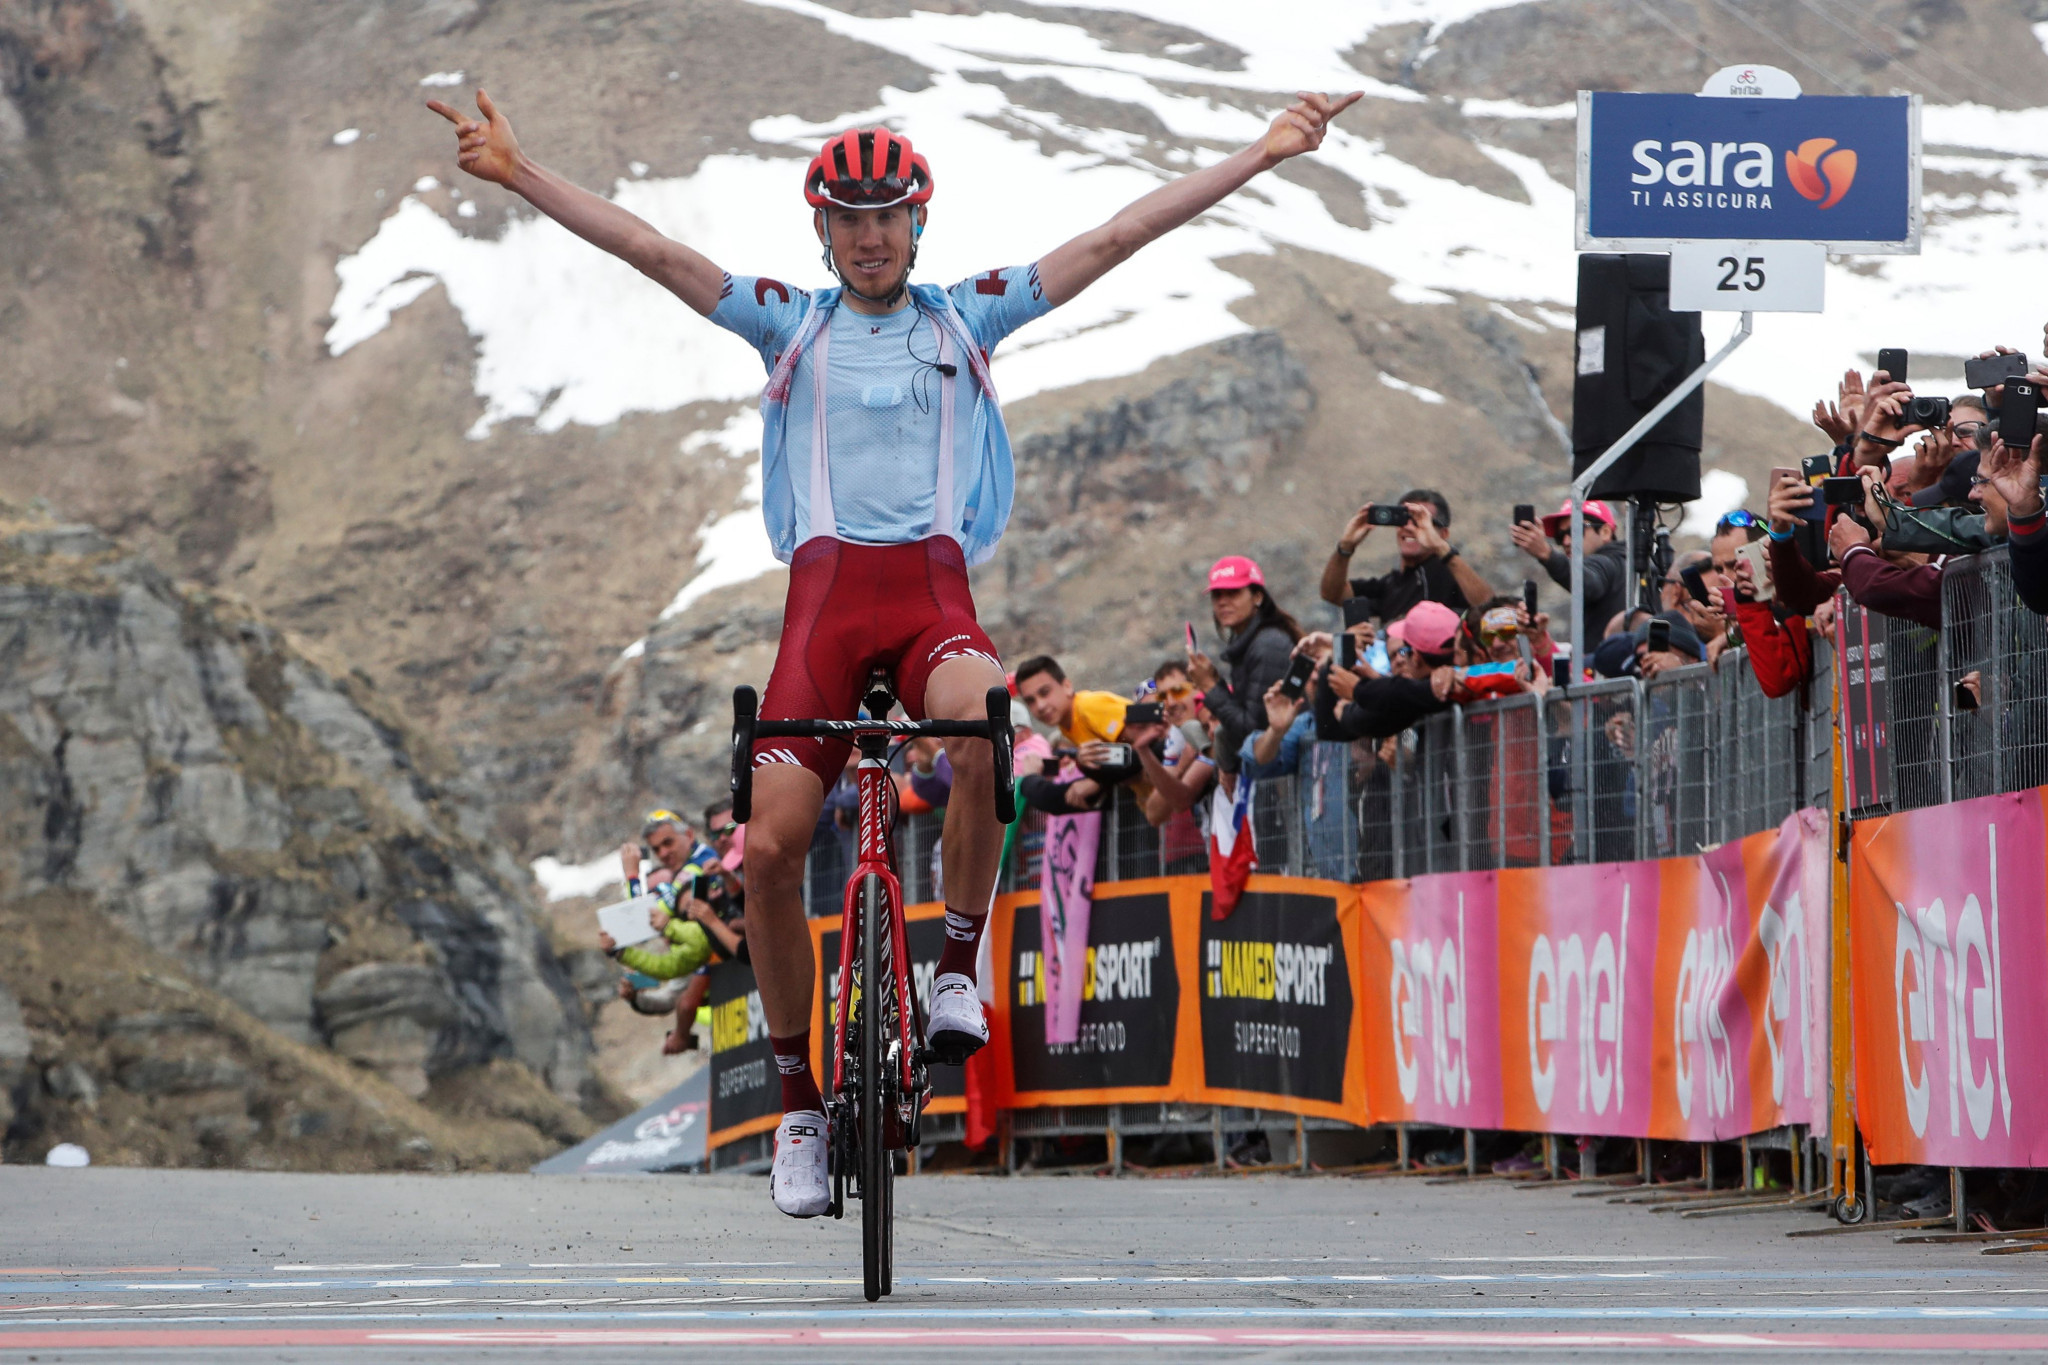 Zakarin wins Giro d'Italia stage 13 to stay in contention as Polanc remains overall leader